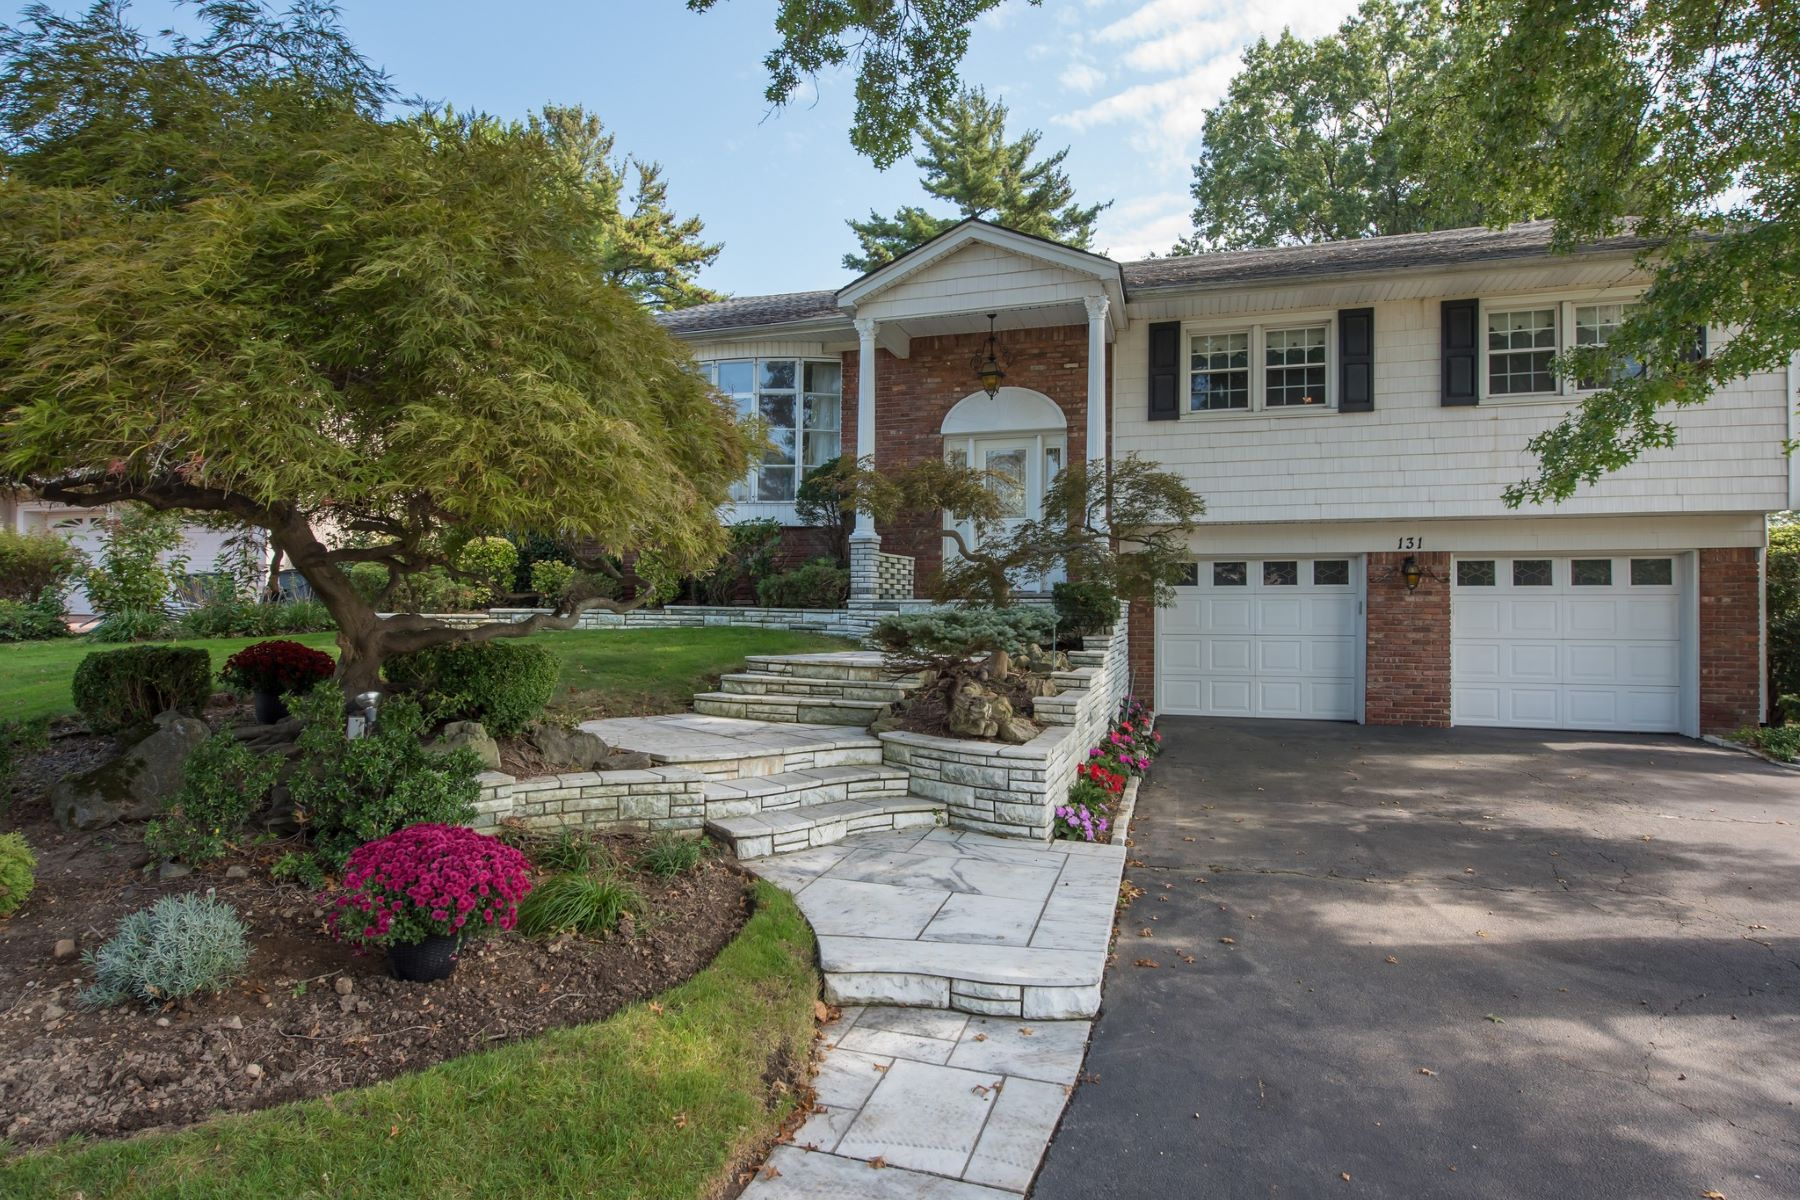 Single Family Homes for Active at Manhasset Hills 131 Monterey Dr Manhasset Hills, New York 11040 United States